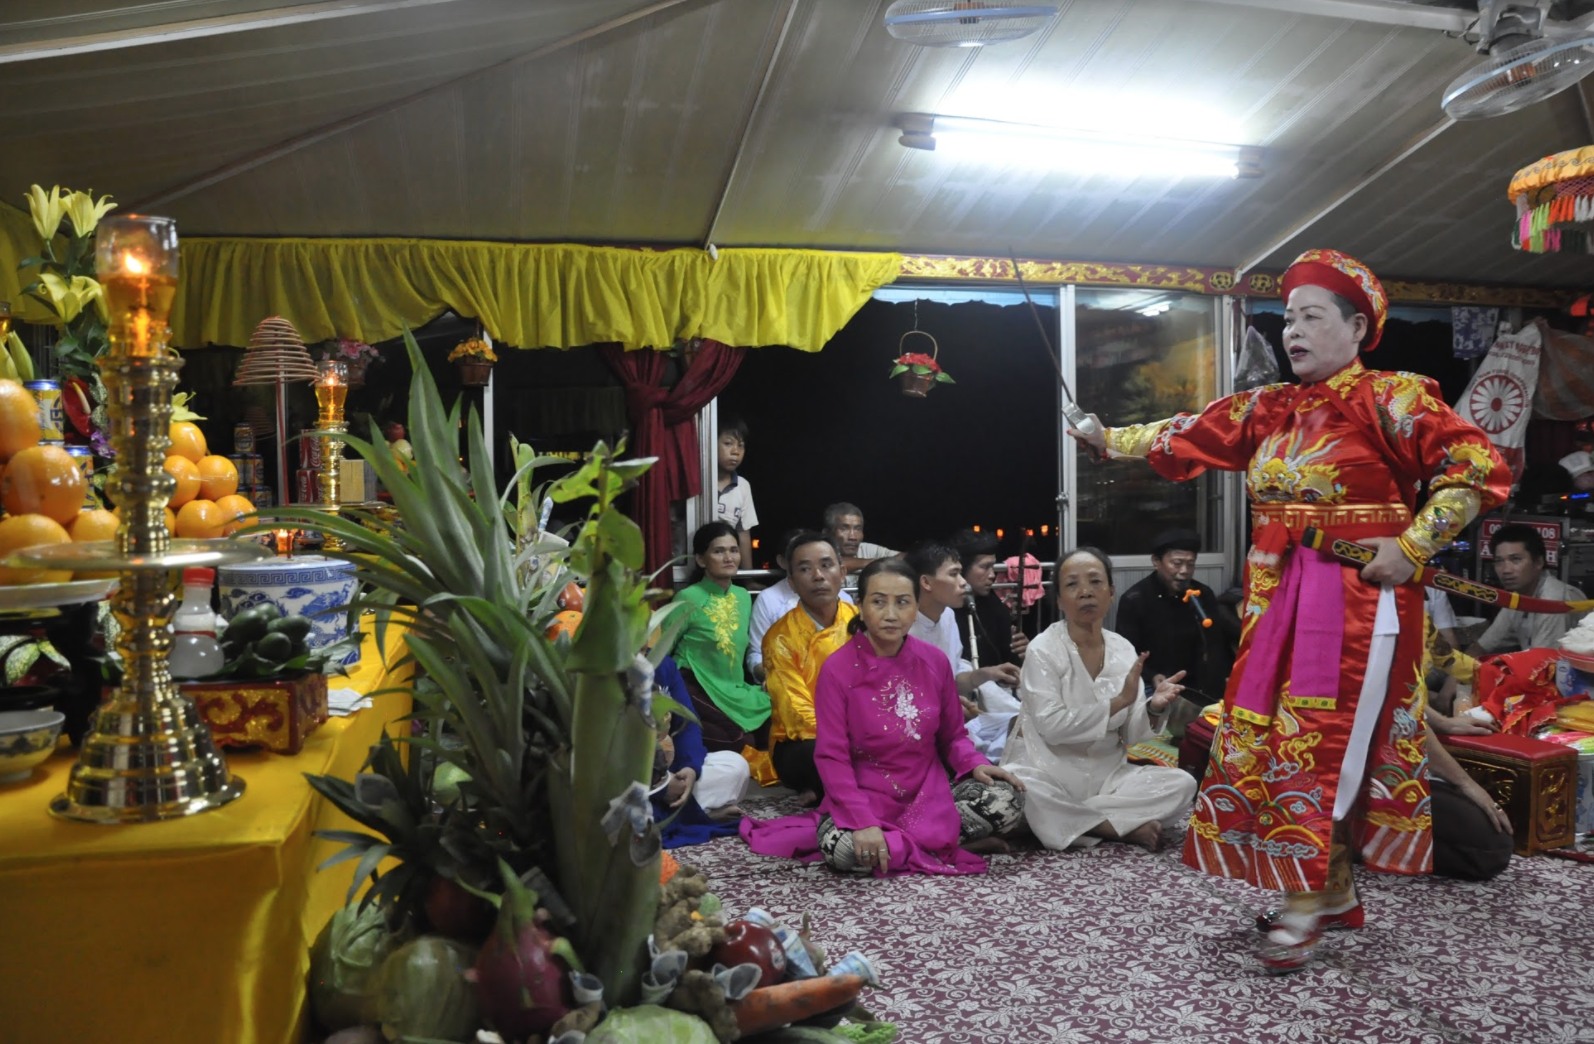 Kim Chi in a ritual trance as a king performing a dance to honor the Mother Goddess. (Photo: Loa/Jenny Lý)